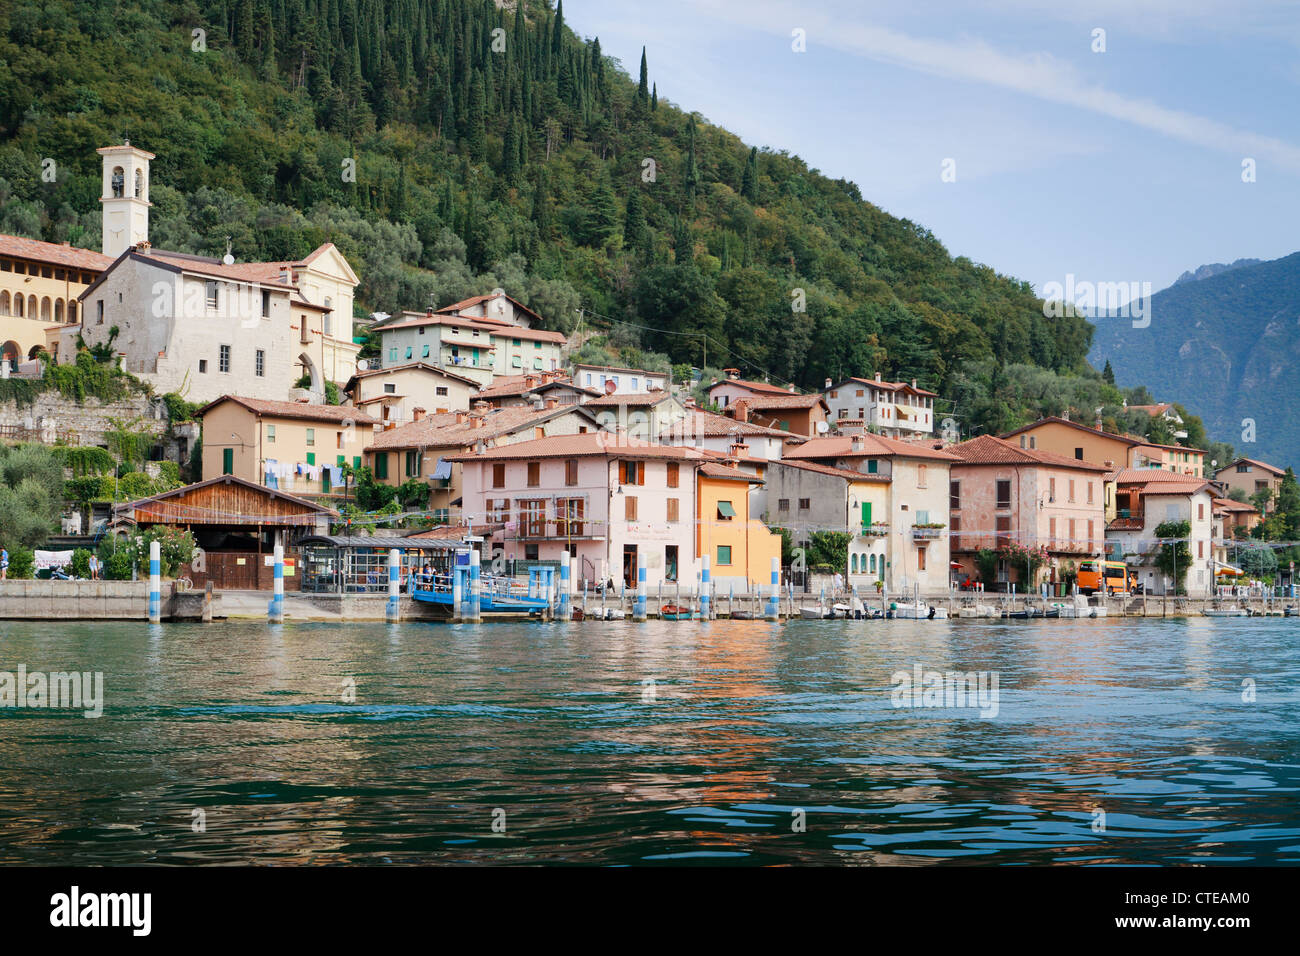 Town of Peschiera from Lago d'Iseo, waterfront with 18th century church on hill behind, on forested island of - Stock Image